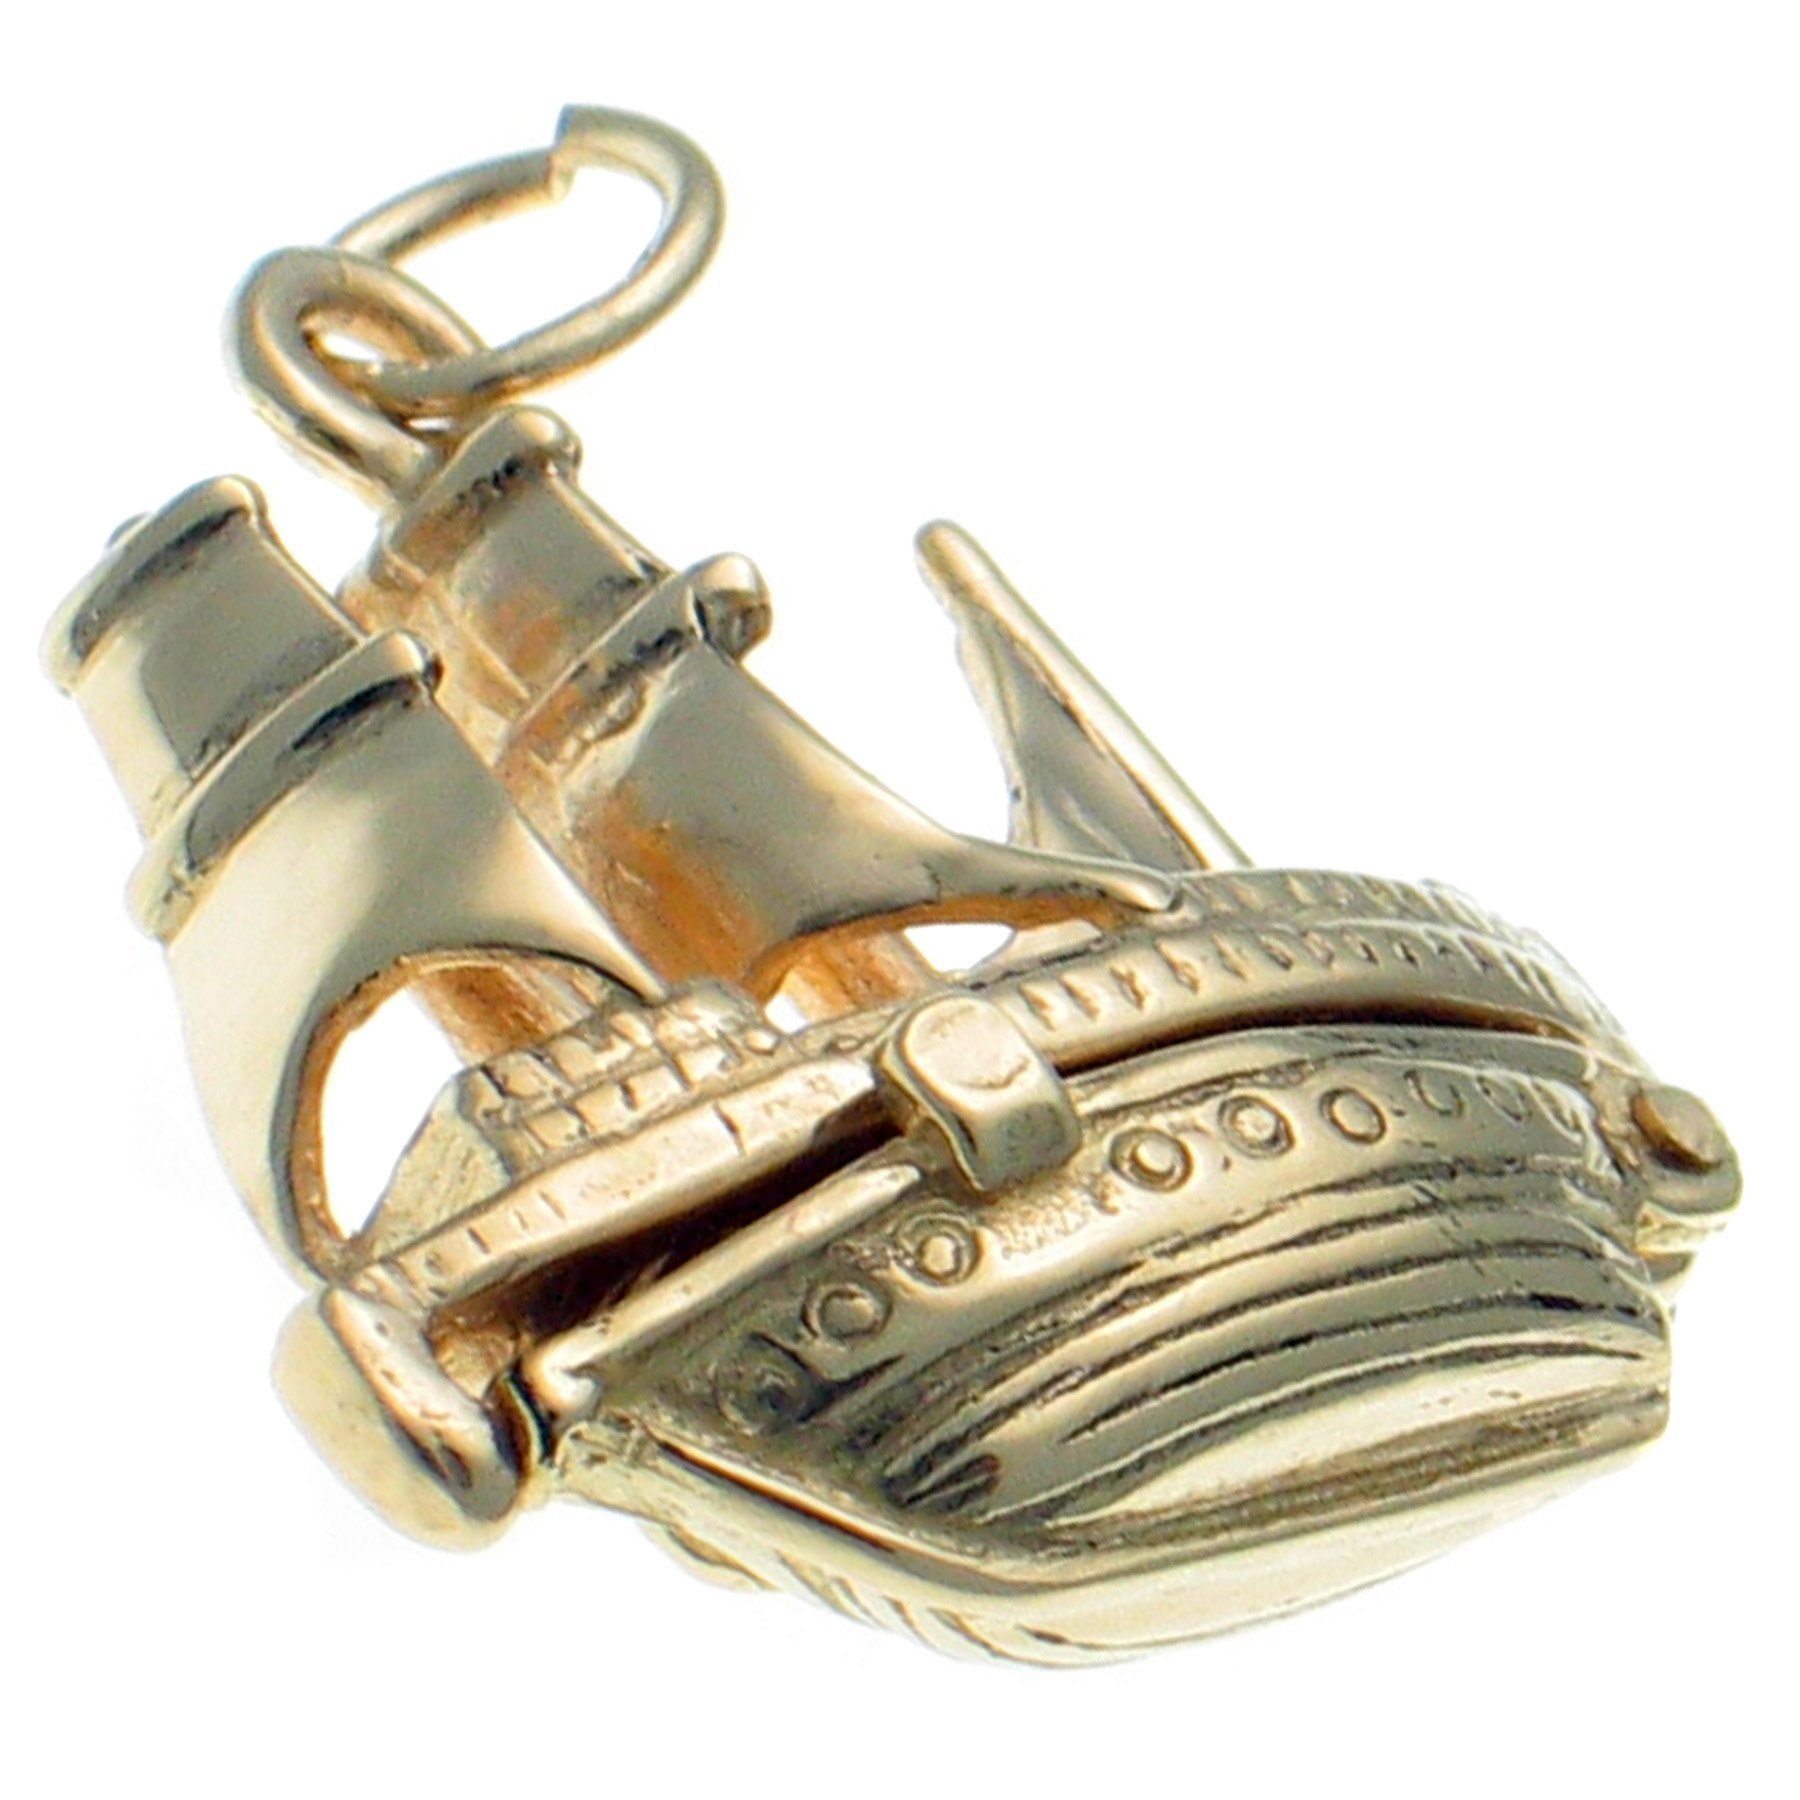 9ct Gold Opening Charm Pendant, Mayflower Ship Opens To Show Anchor & Rope plus Engraving Inside. Handmade by Welded Bliss